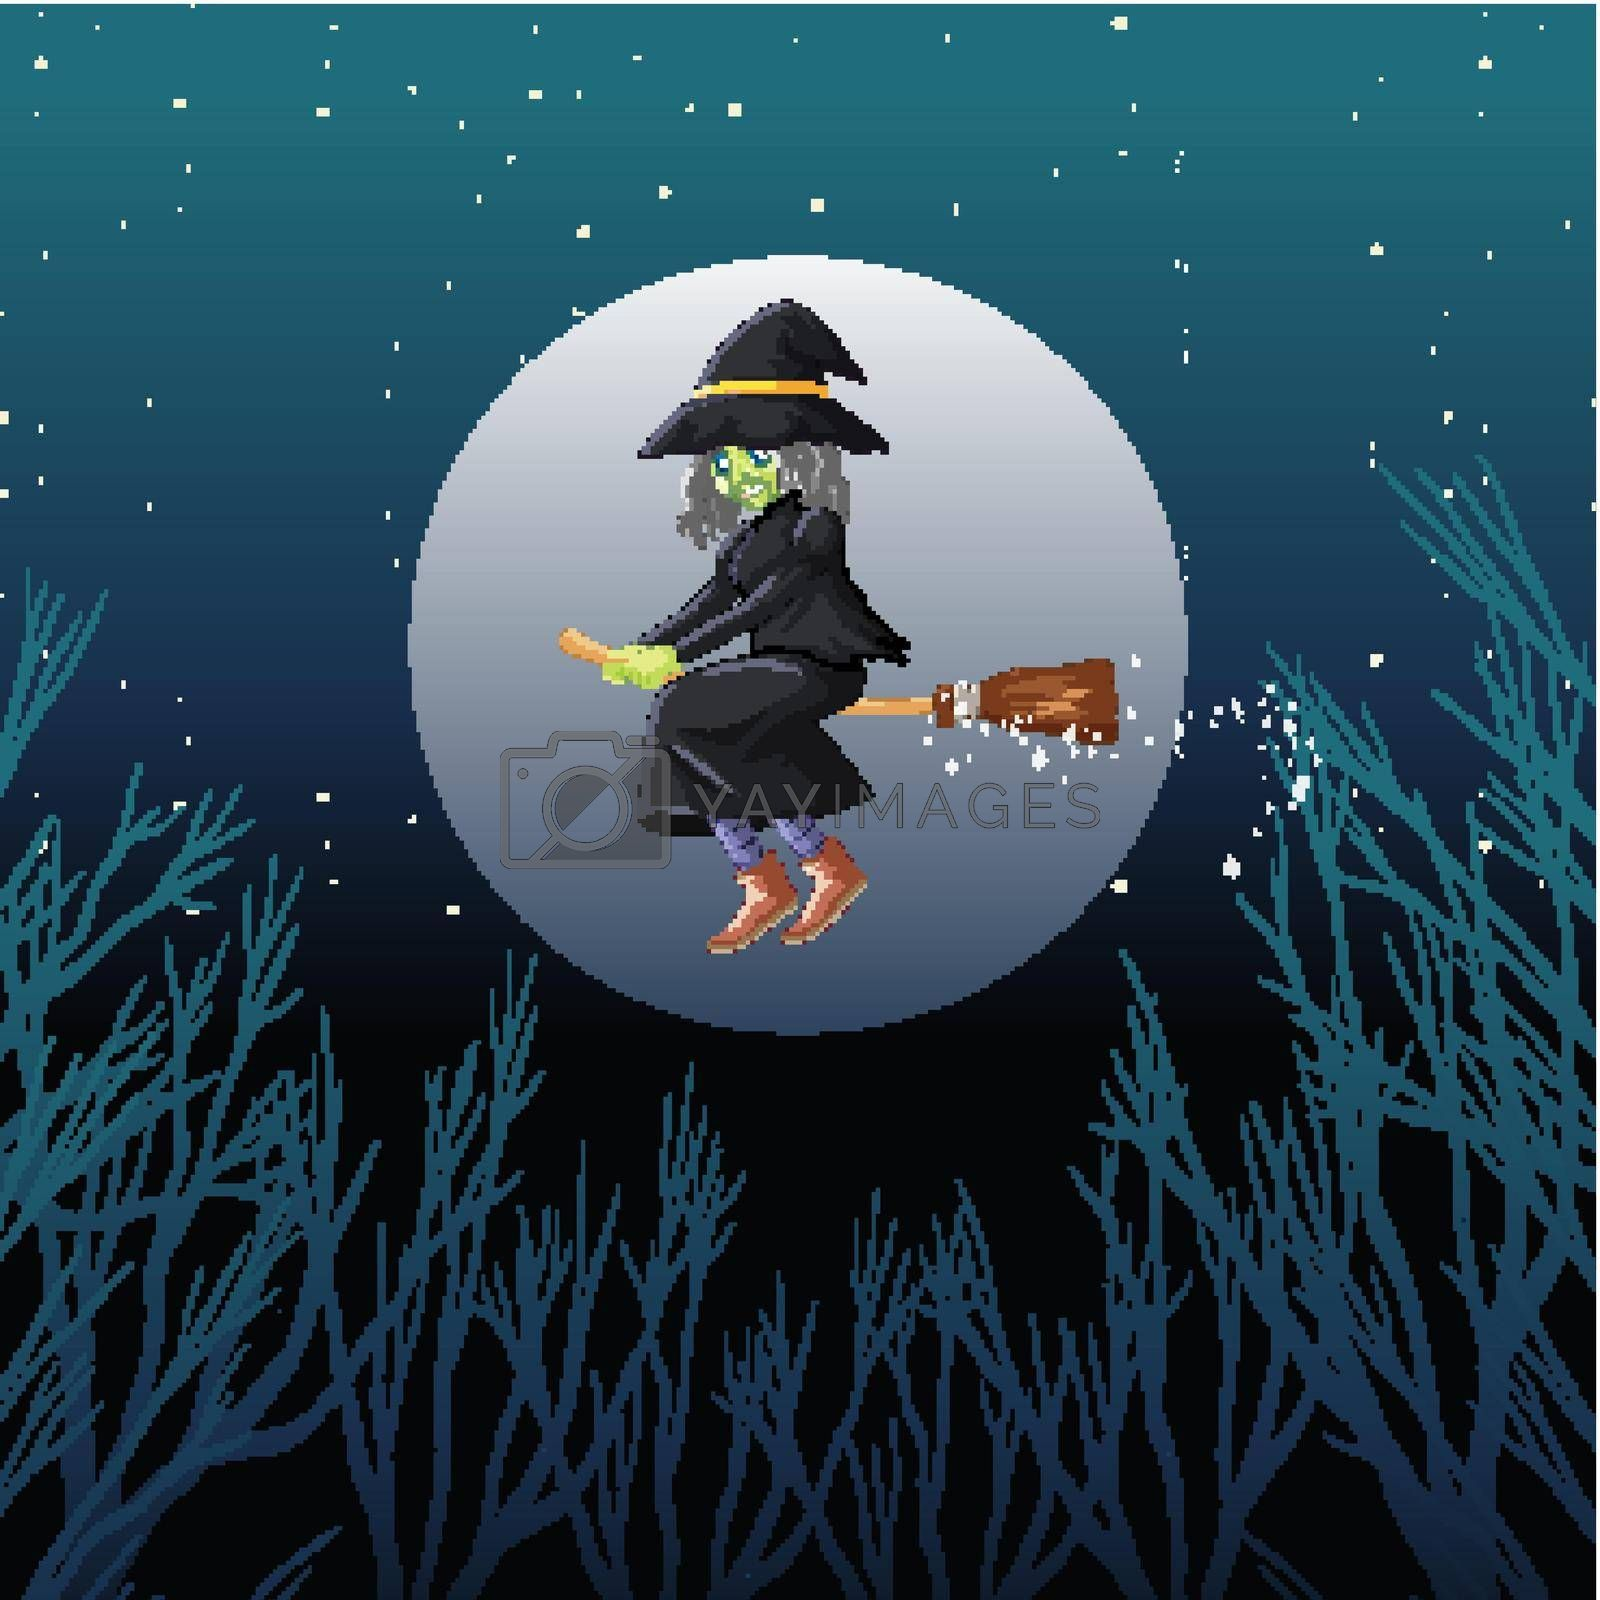 Witch or wizard riding broomstick the sky isolated on sky background illustration